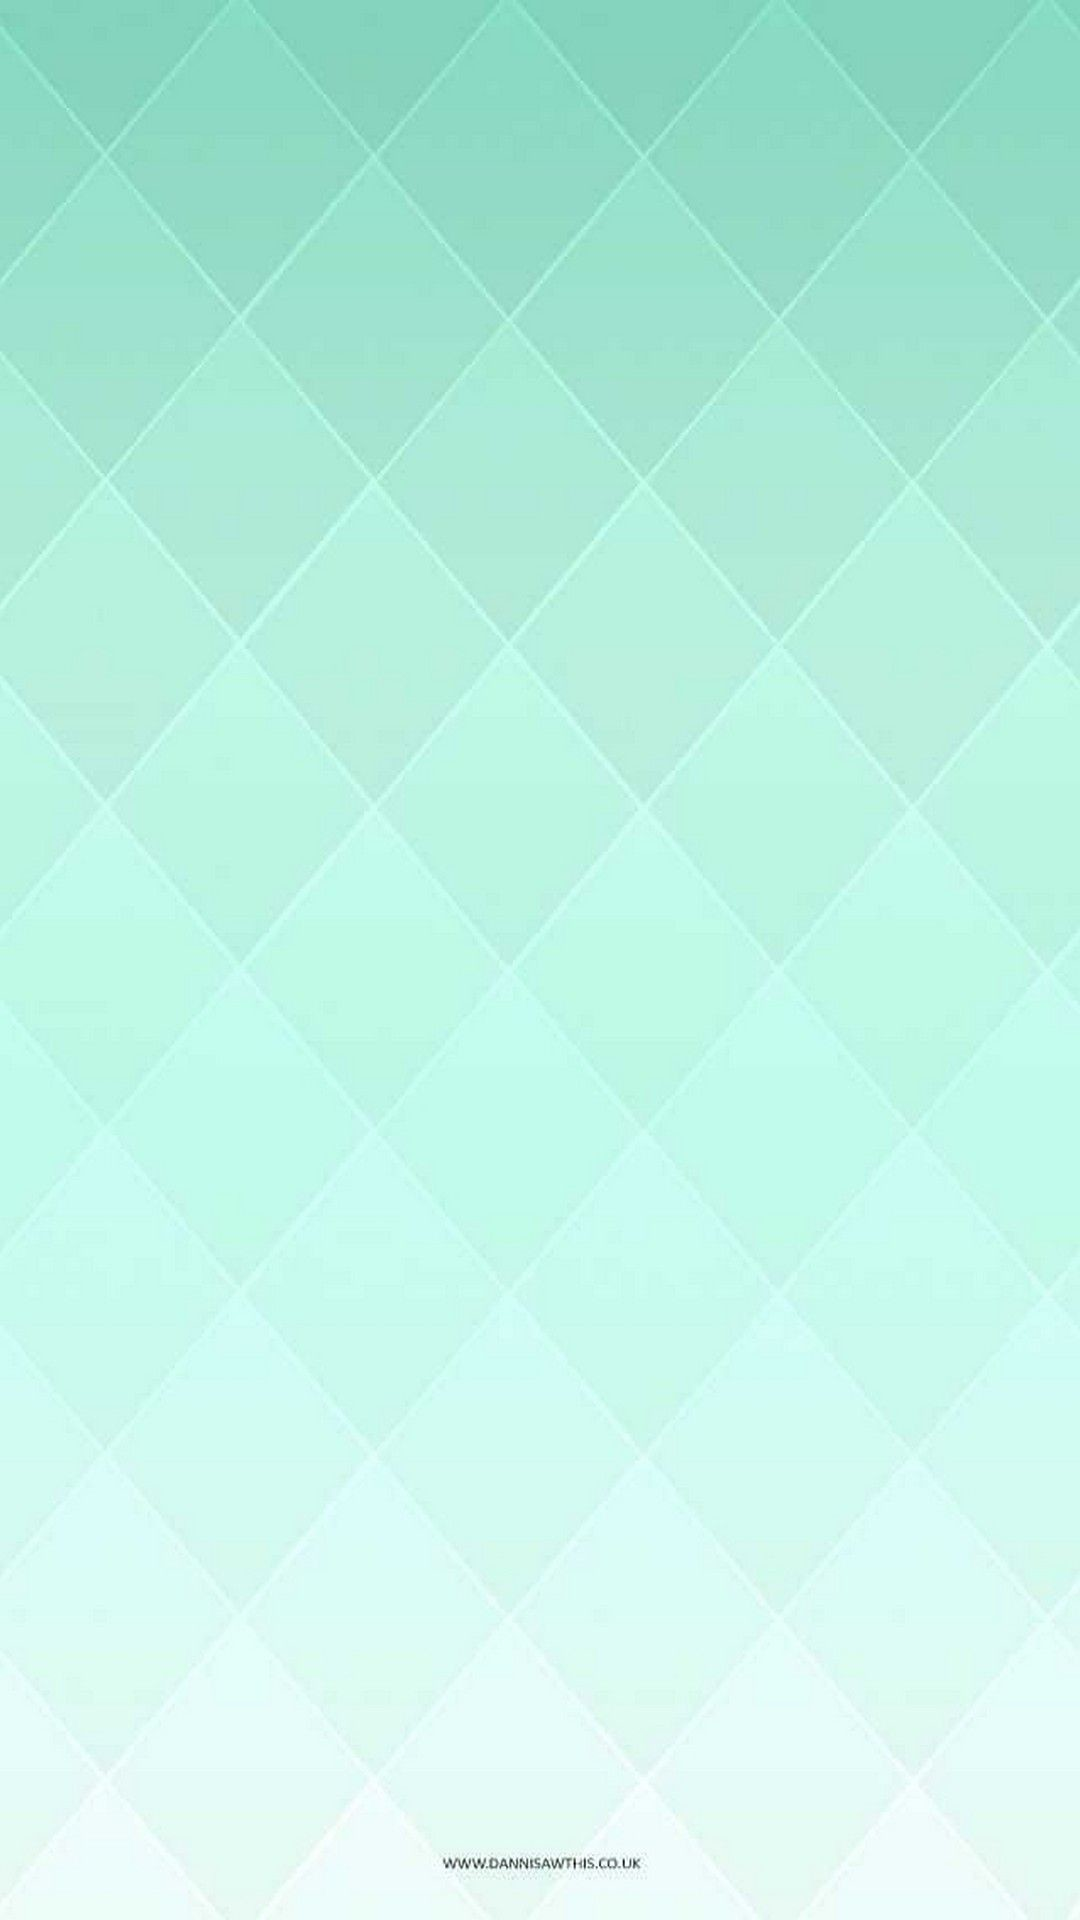 Mint Green Wallpapers 61 Images